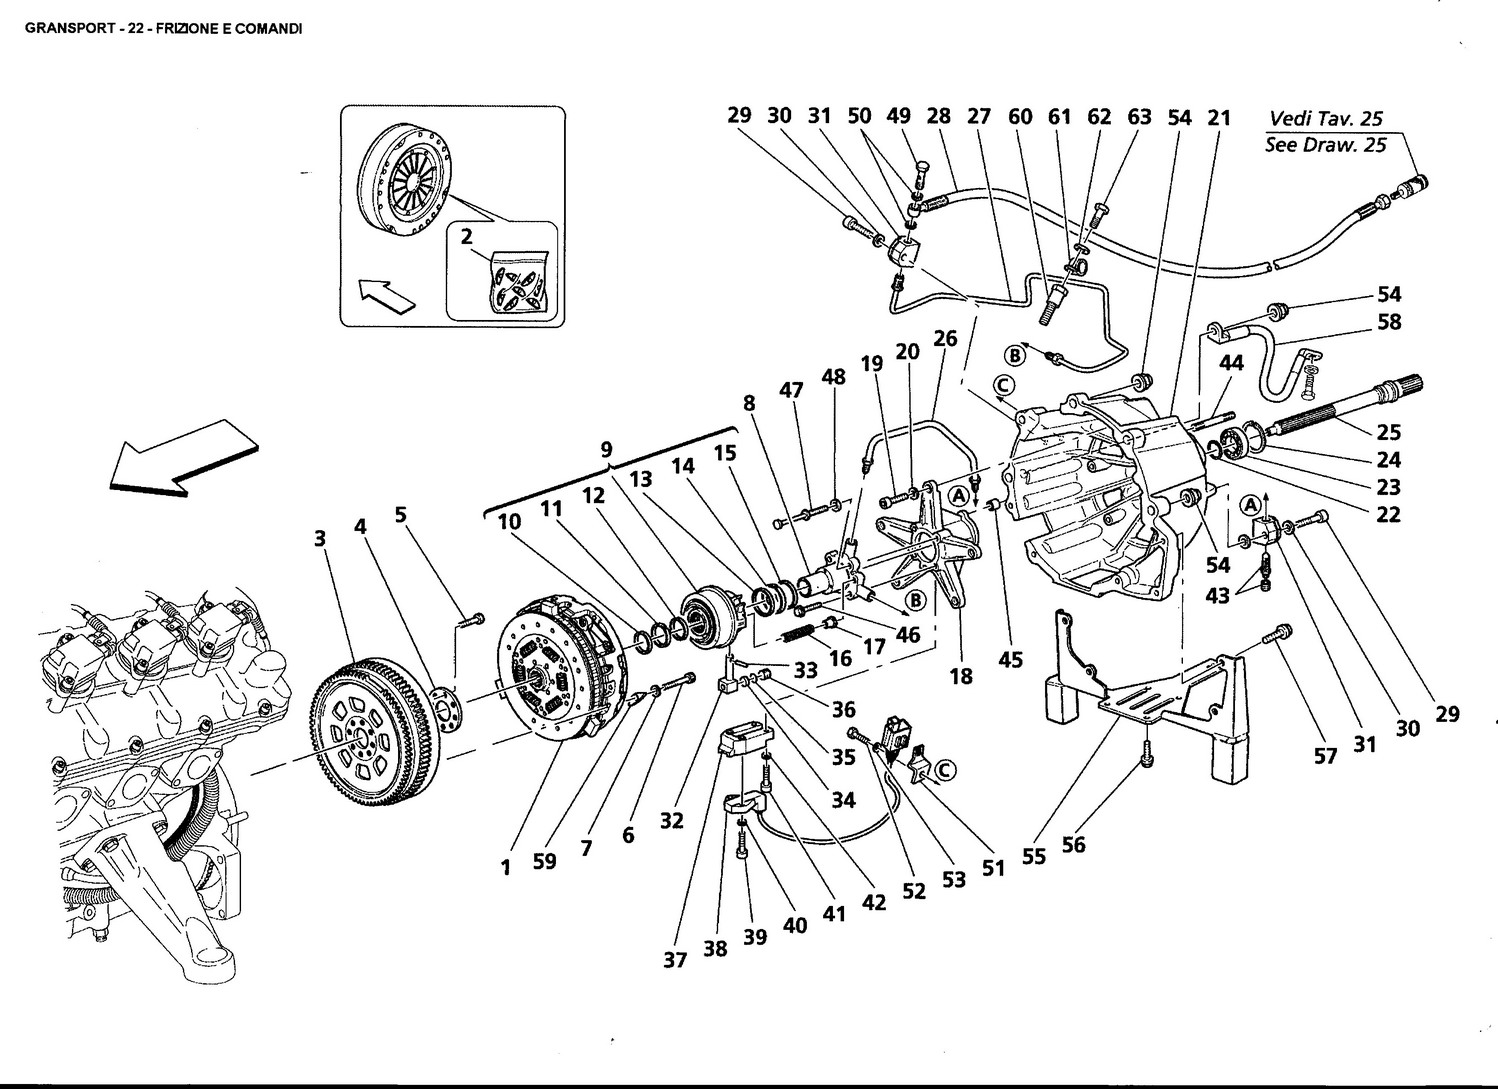 Wiring Diagram For A Vw Superbeetle